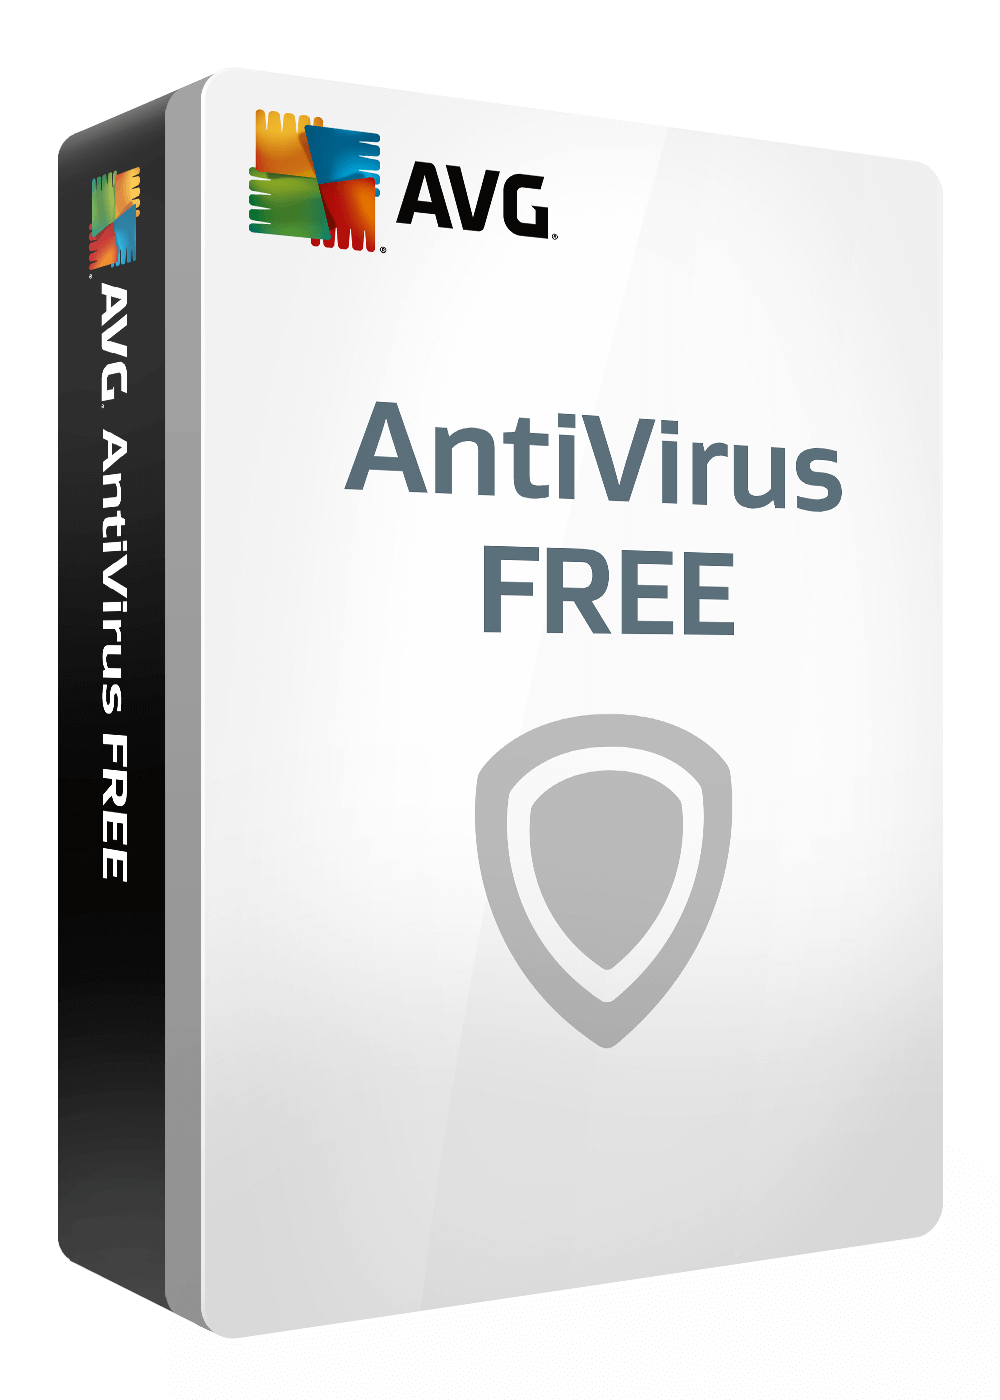 avg protection software free download